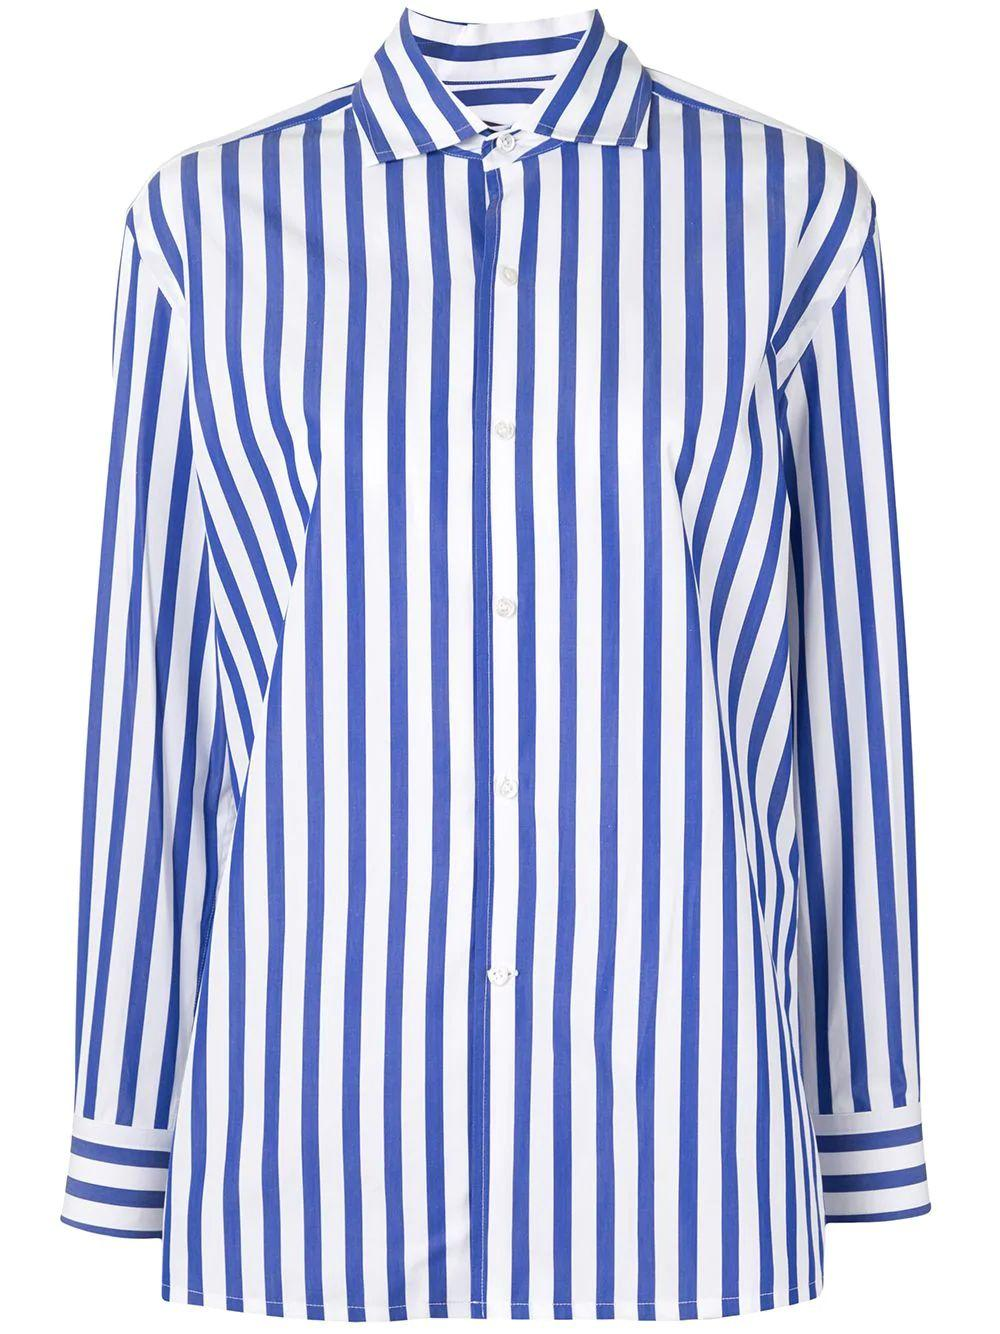 Capri Stripe Button Down Shirt